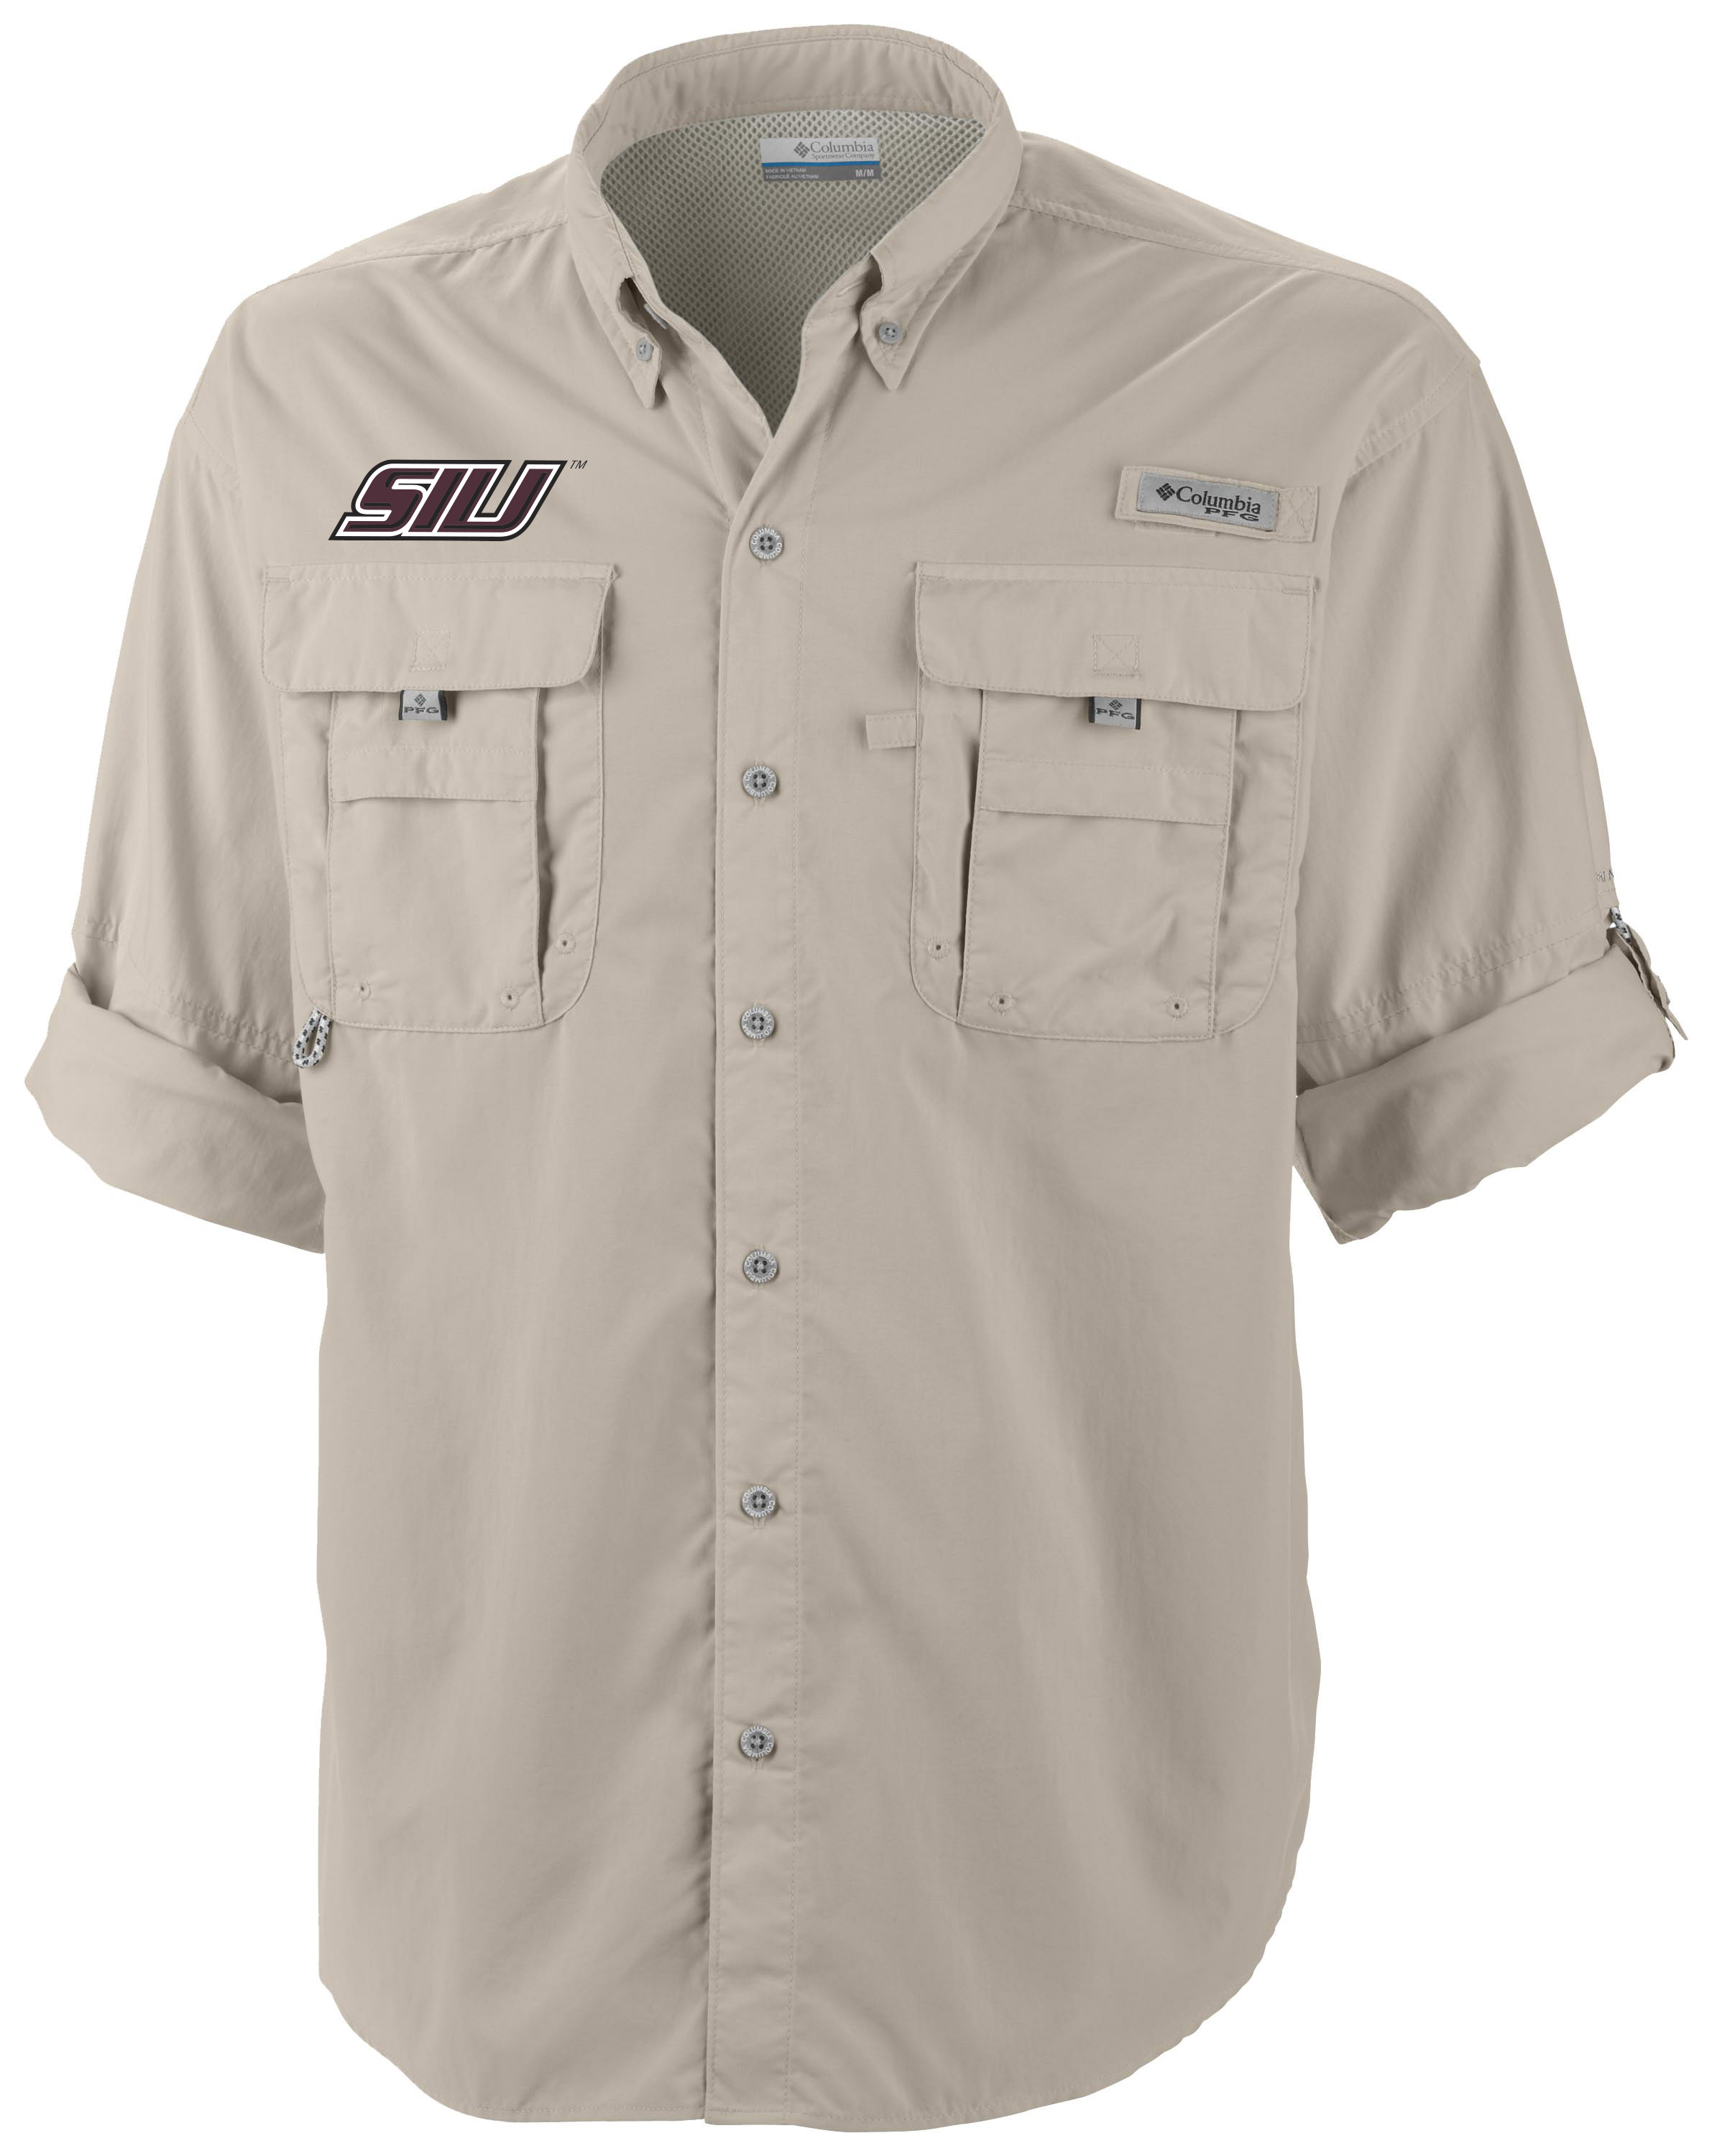 Image for the COLUMBIA® BAHAMA™ II SIU KHAKI LONG SLEEVE PFG SHIRT product